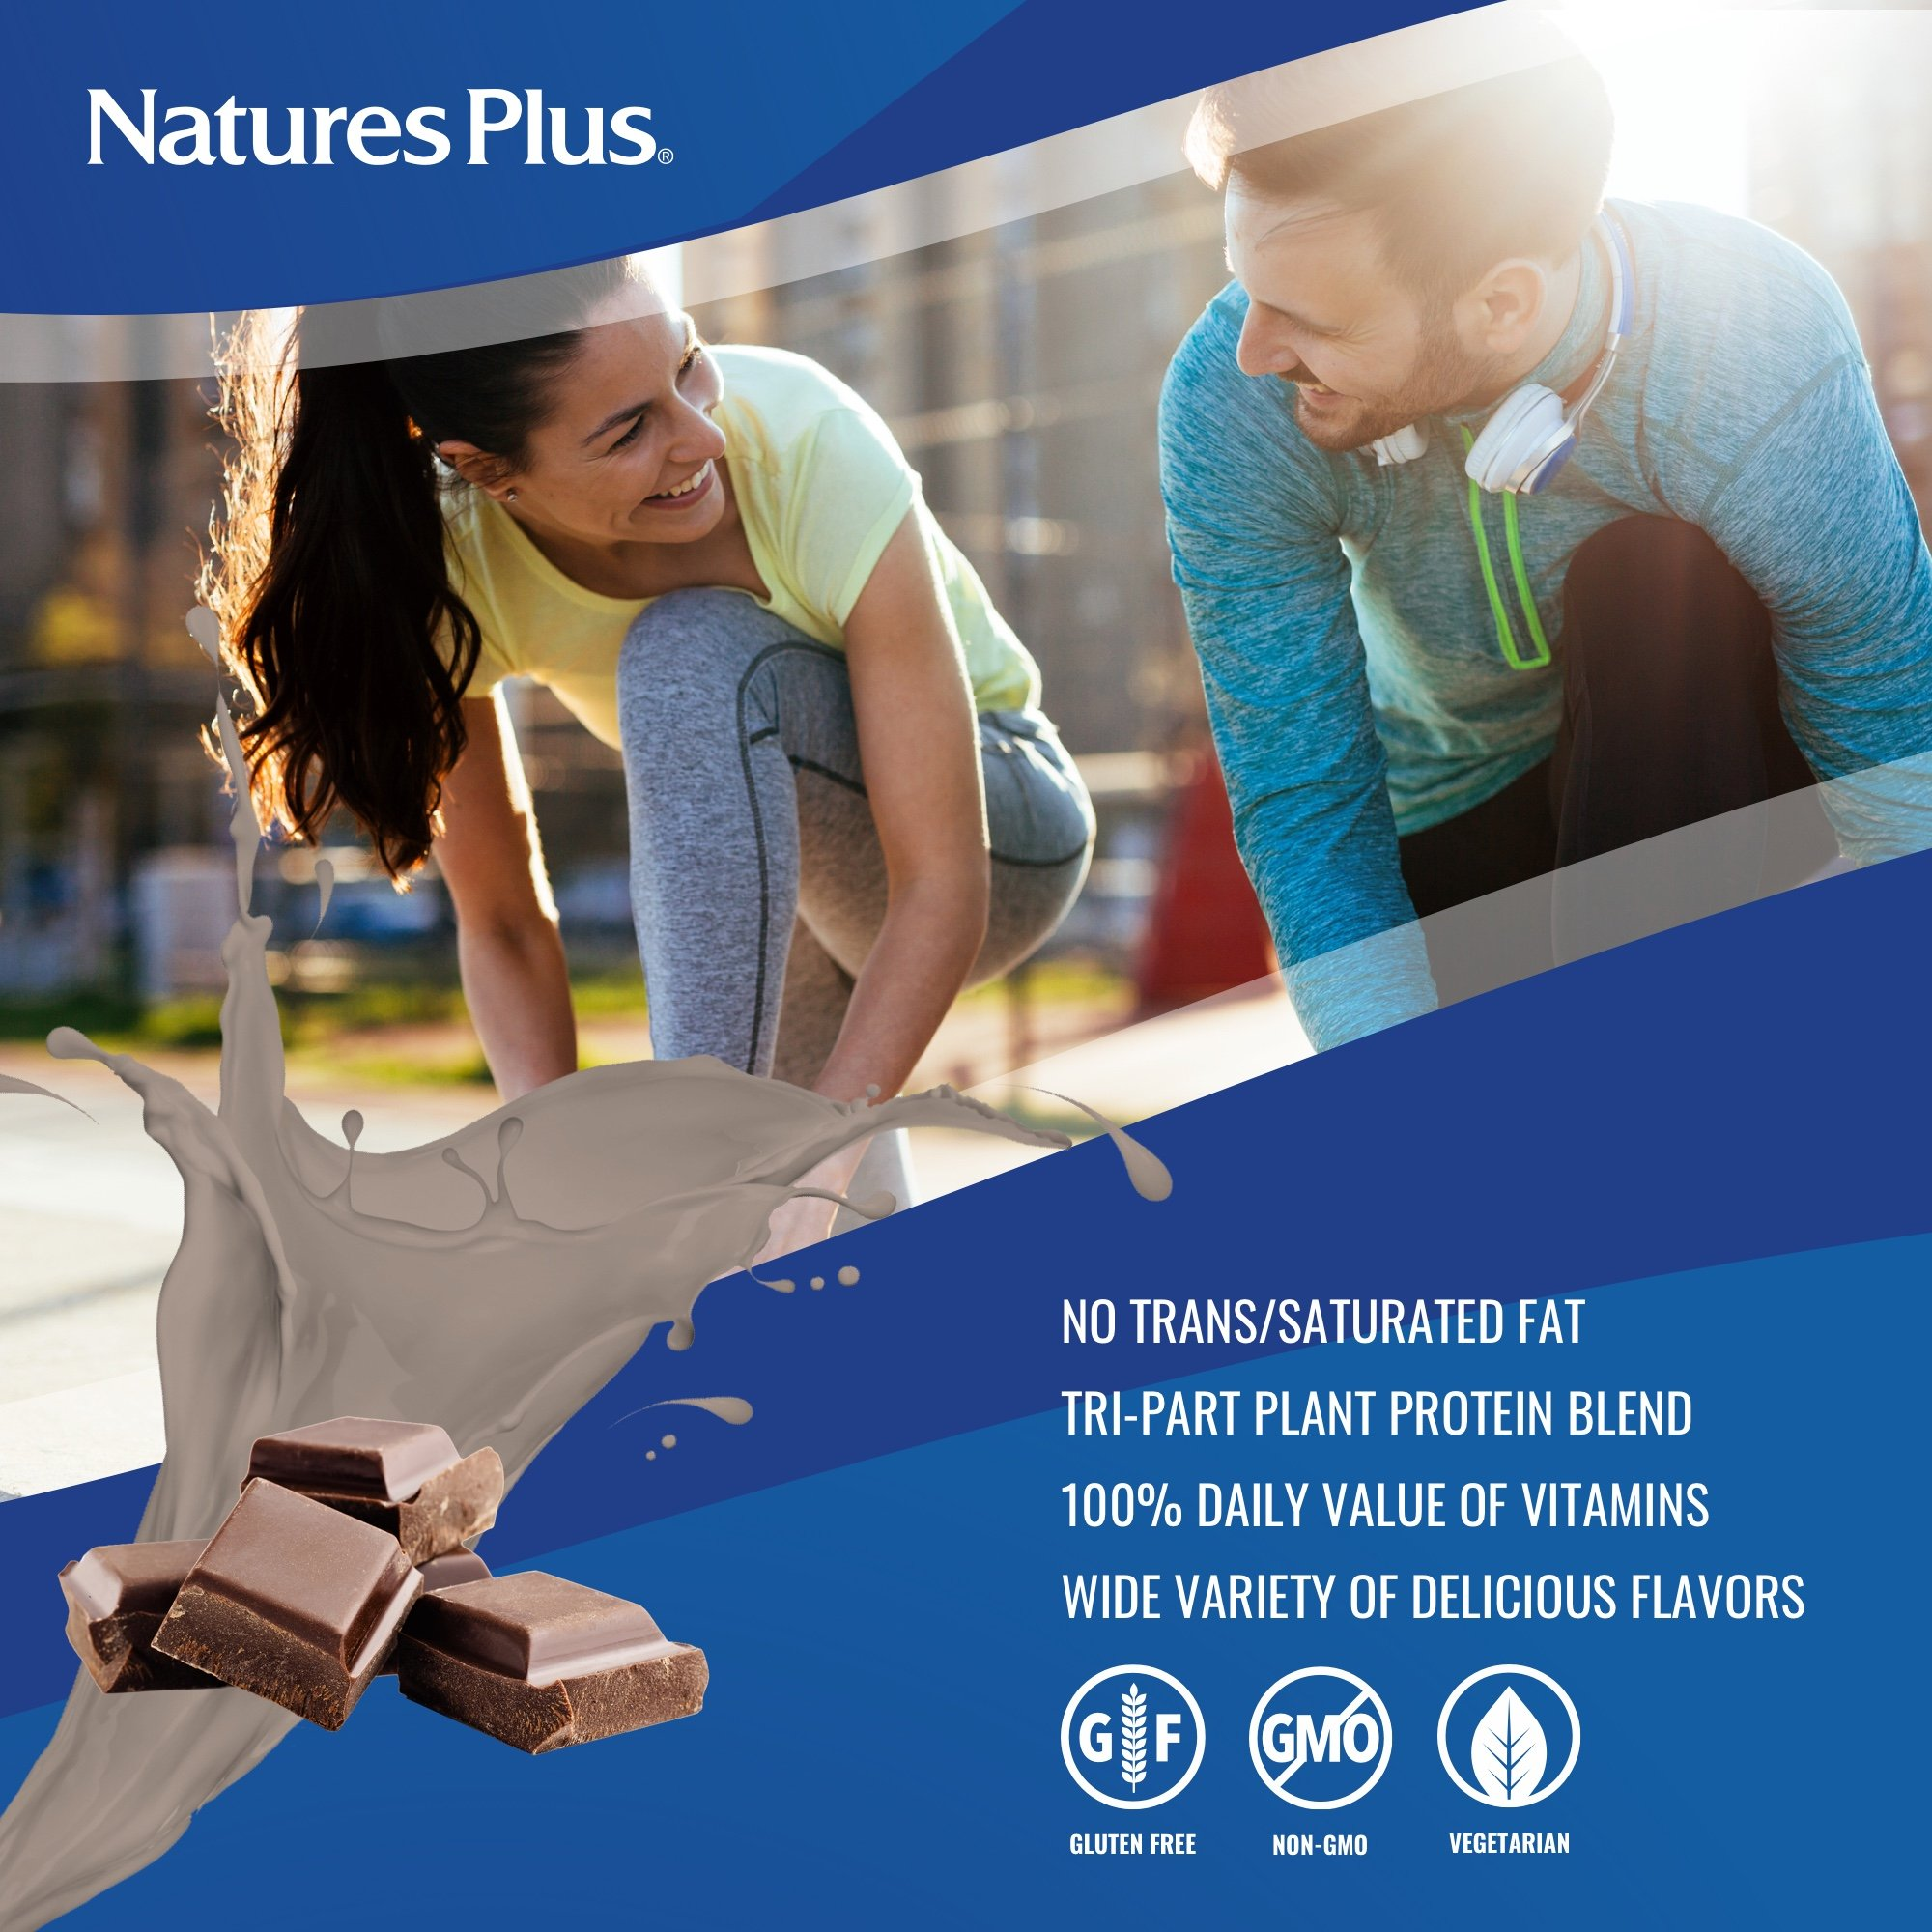 NaturesPlus SPIRU-TEIN Shake - Chocolate - 5 lbs, Spirulina Protein Powder - Plant Based Meal Replacement, Vitamins & Minerals For Energy - Vegetarian, Gluten-Free - 81 Servings by Nature's Plus (Image #3)